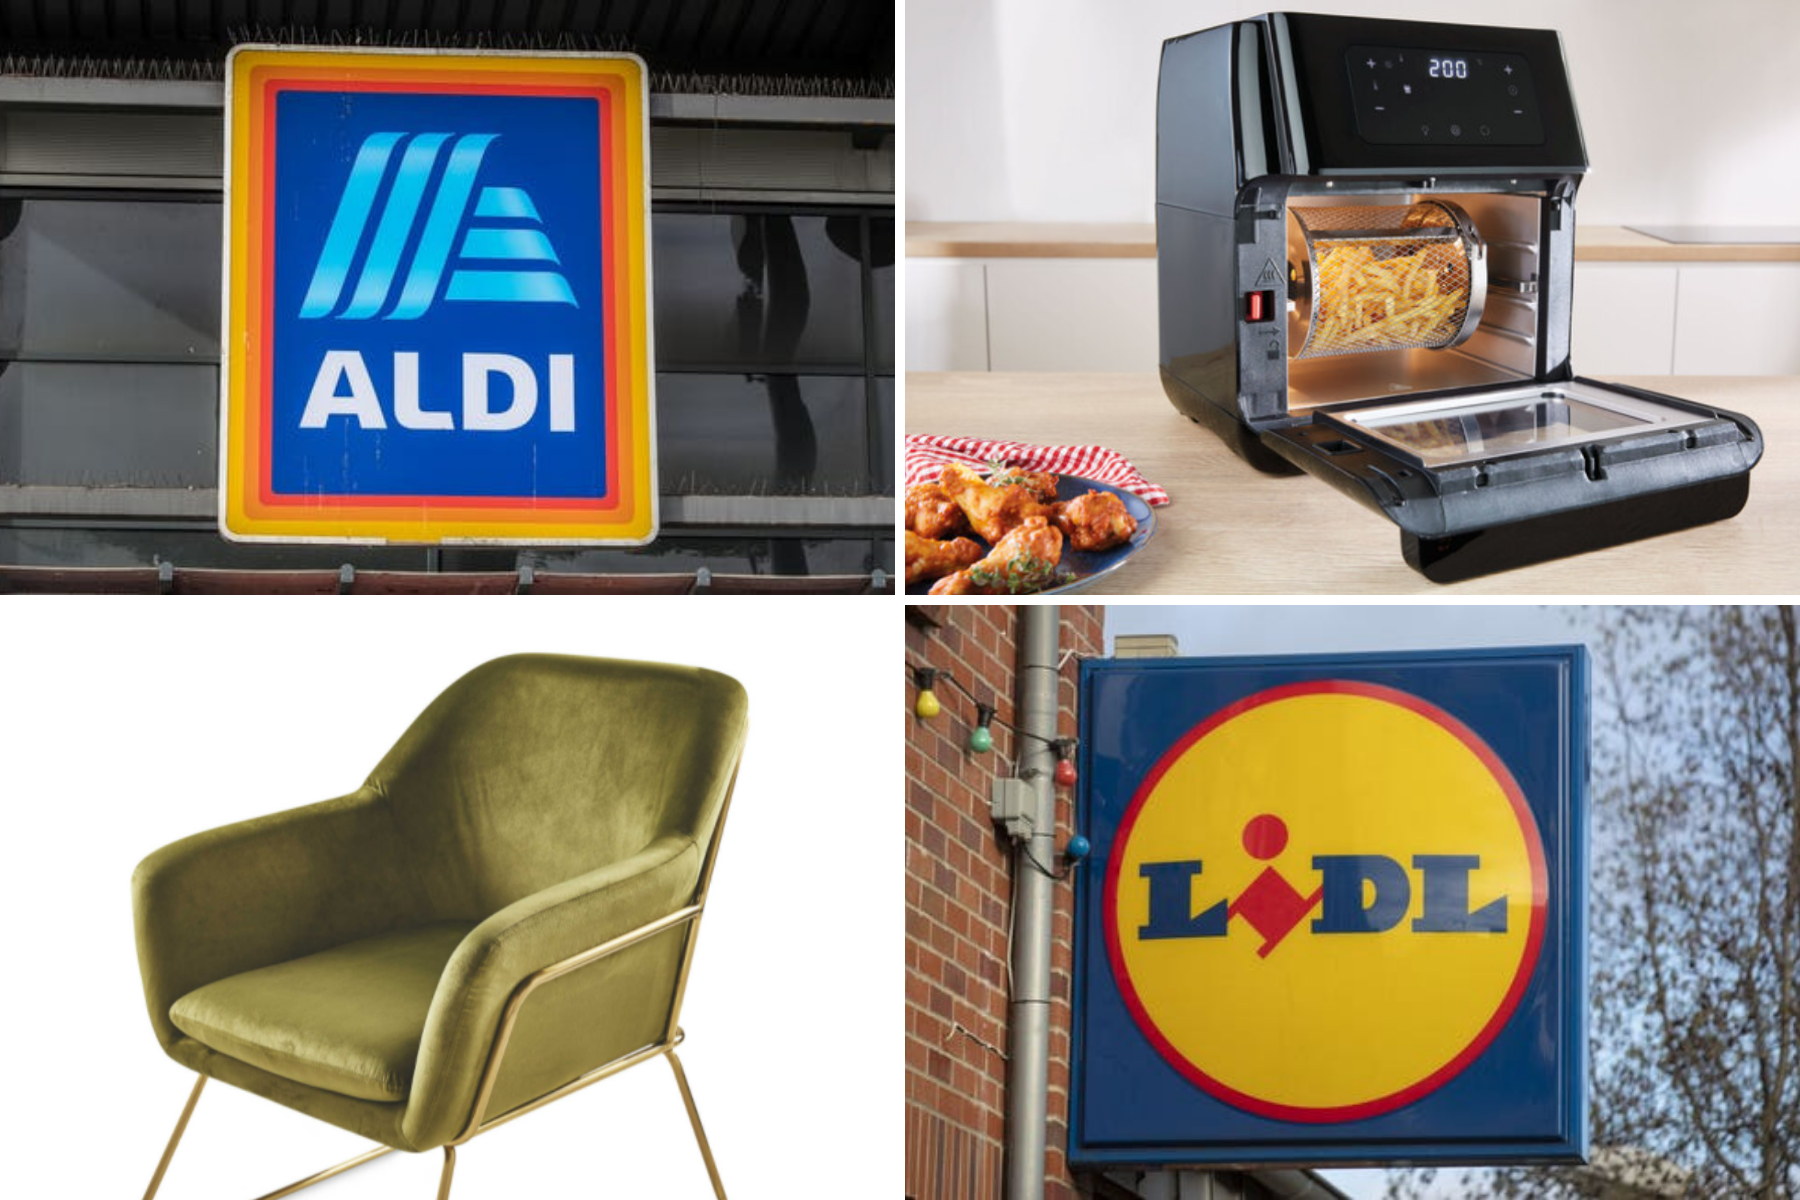 Lidl and Aldi reveal the best bargains you can find in their middle aisles